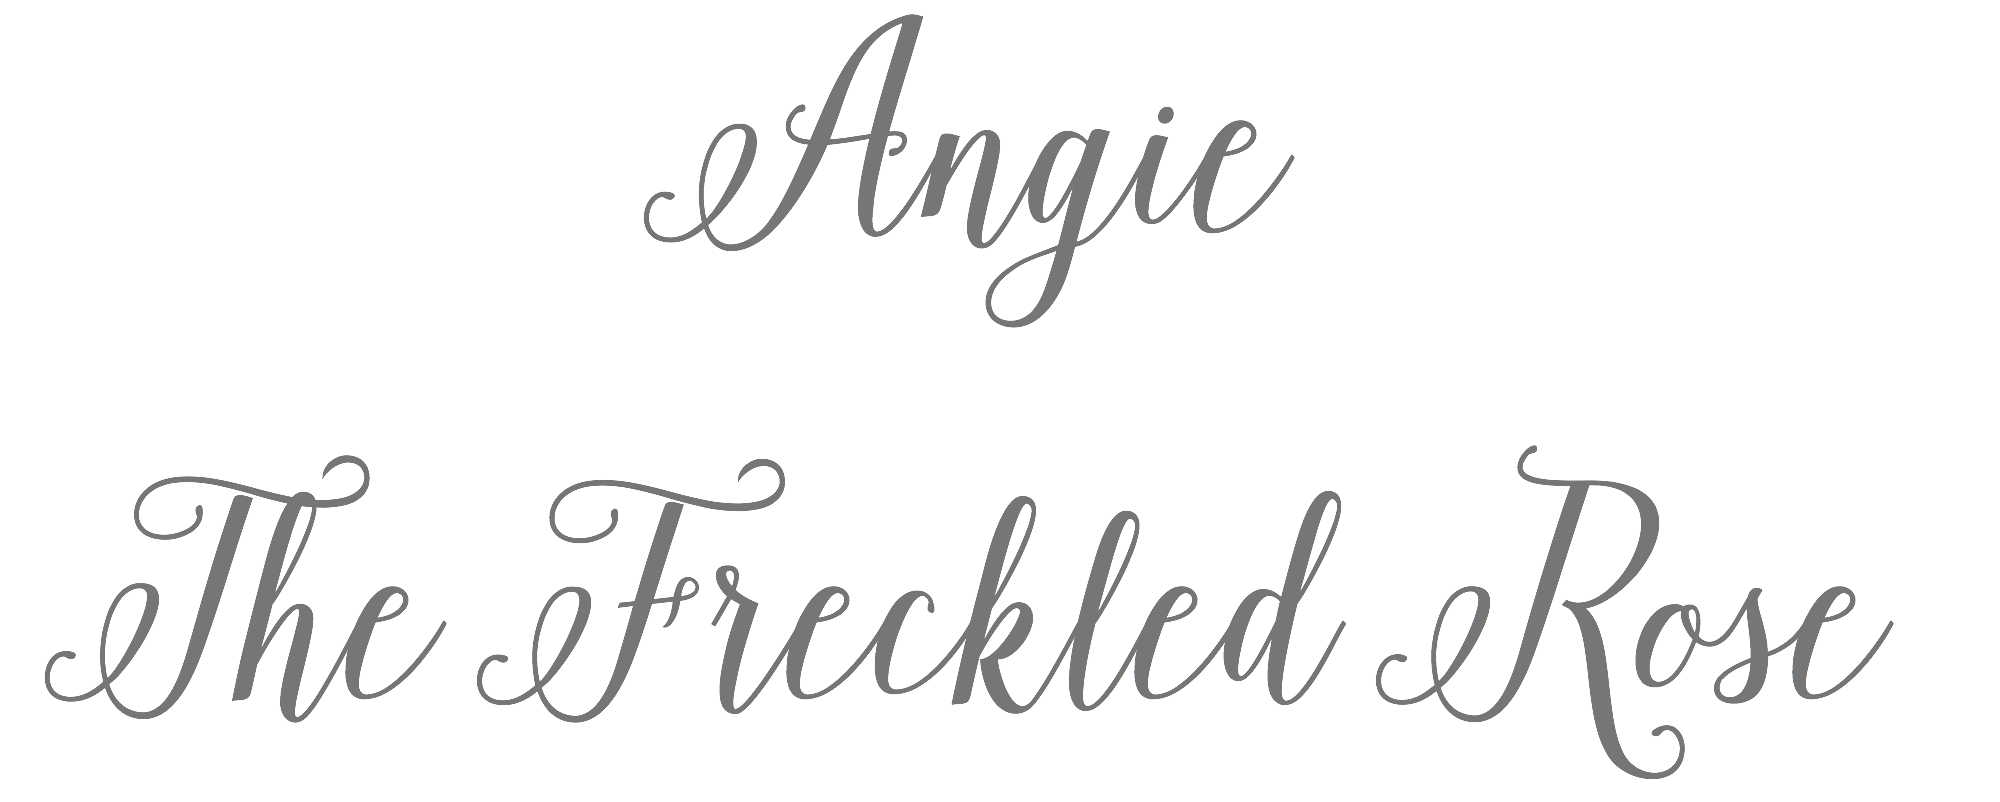 Angie The Freckled Rose | angiethefreckledrose.com